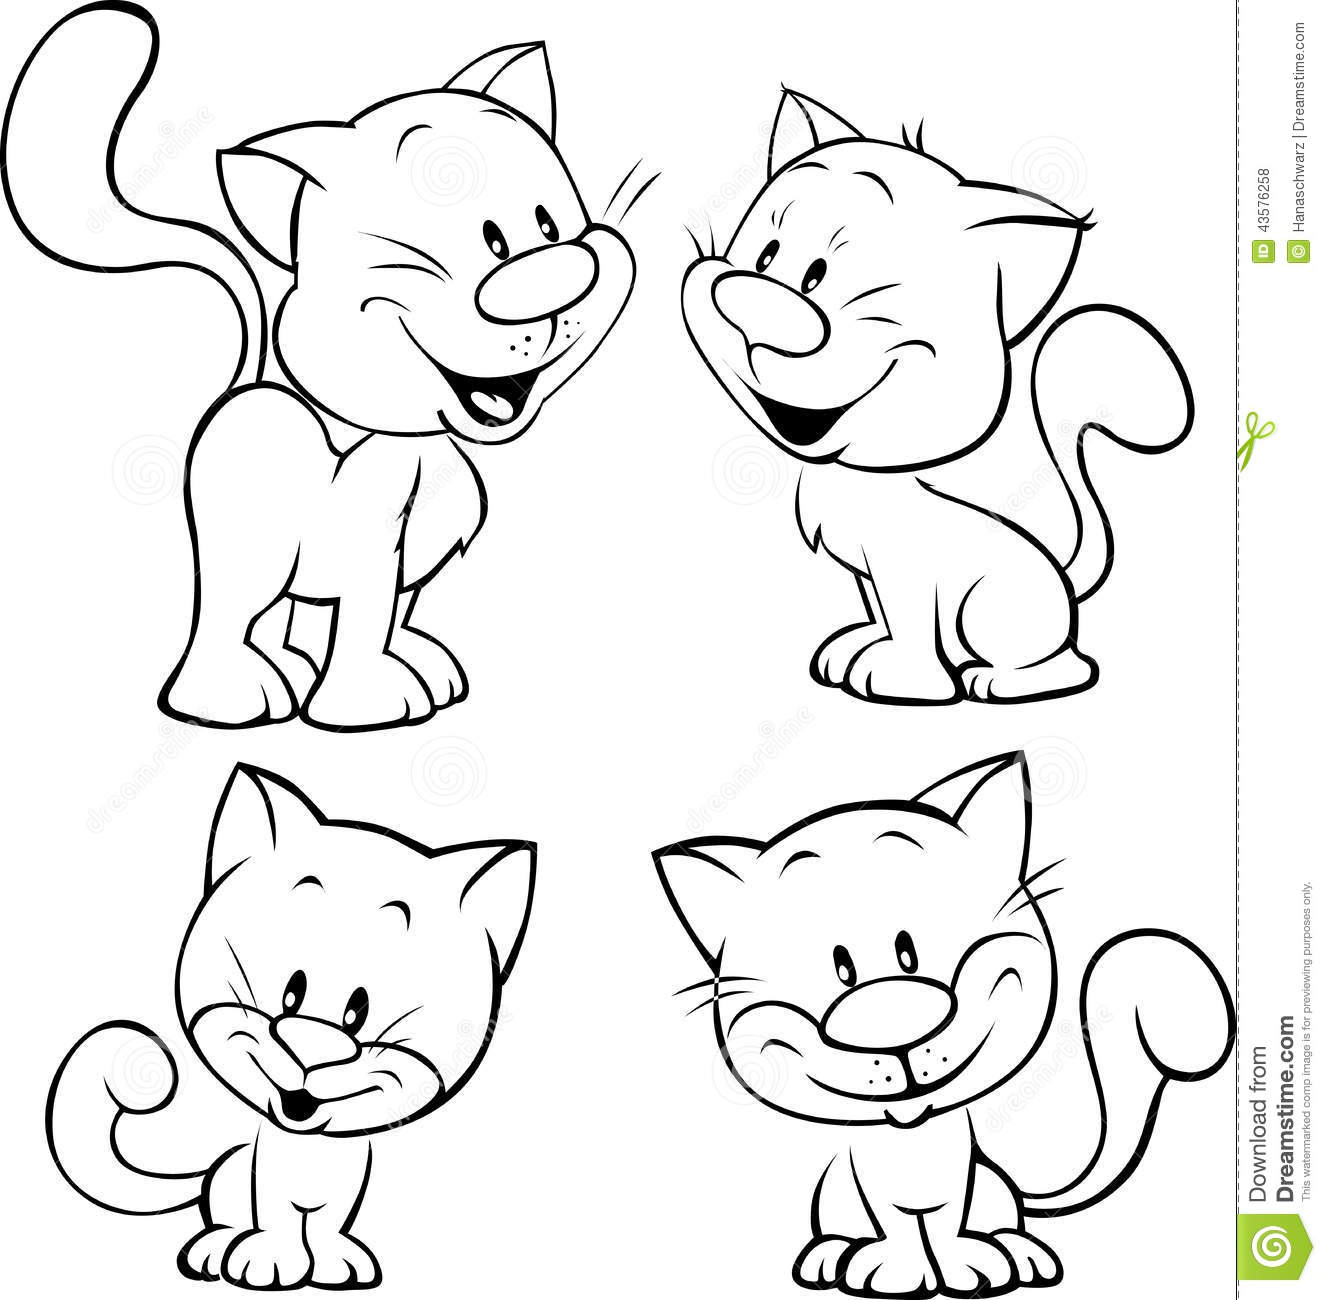 Cat Contour Line Drawing : Cute cat black outline illustration on white stock vector